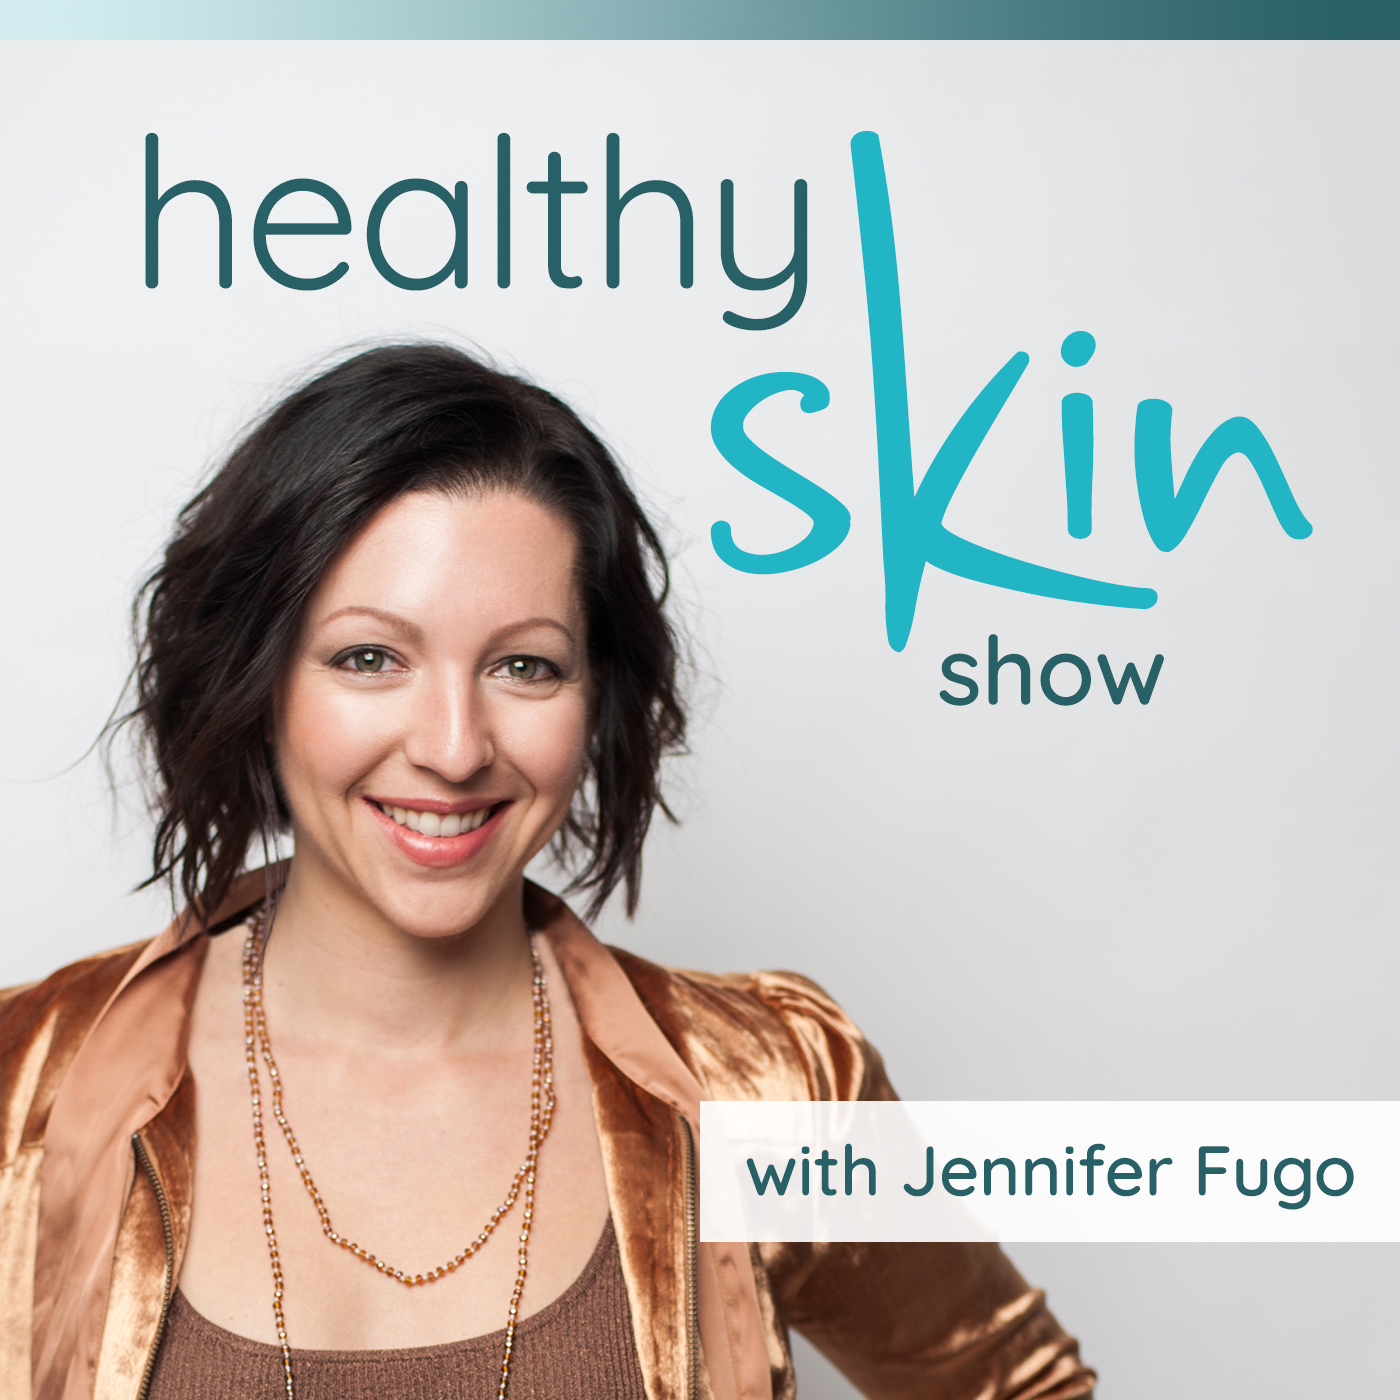 The Healthy Skin Show